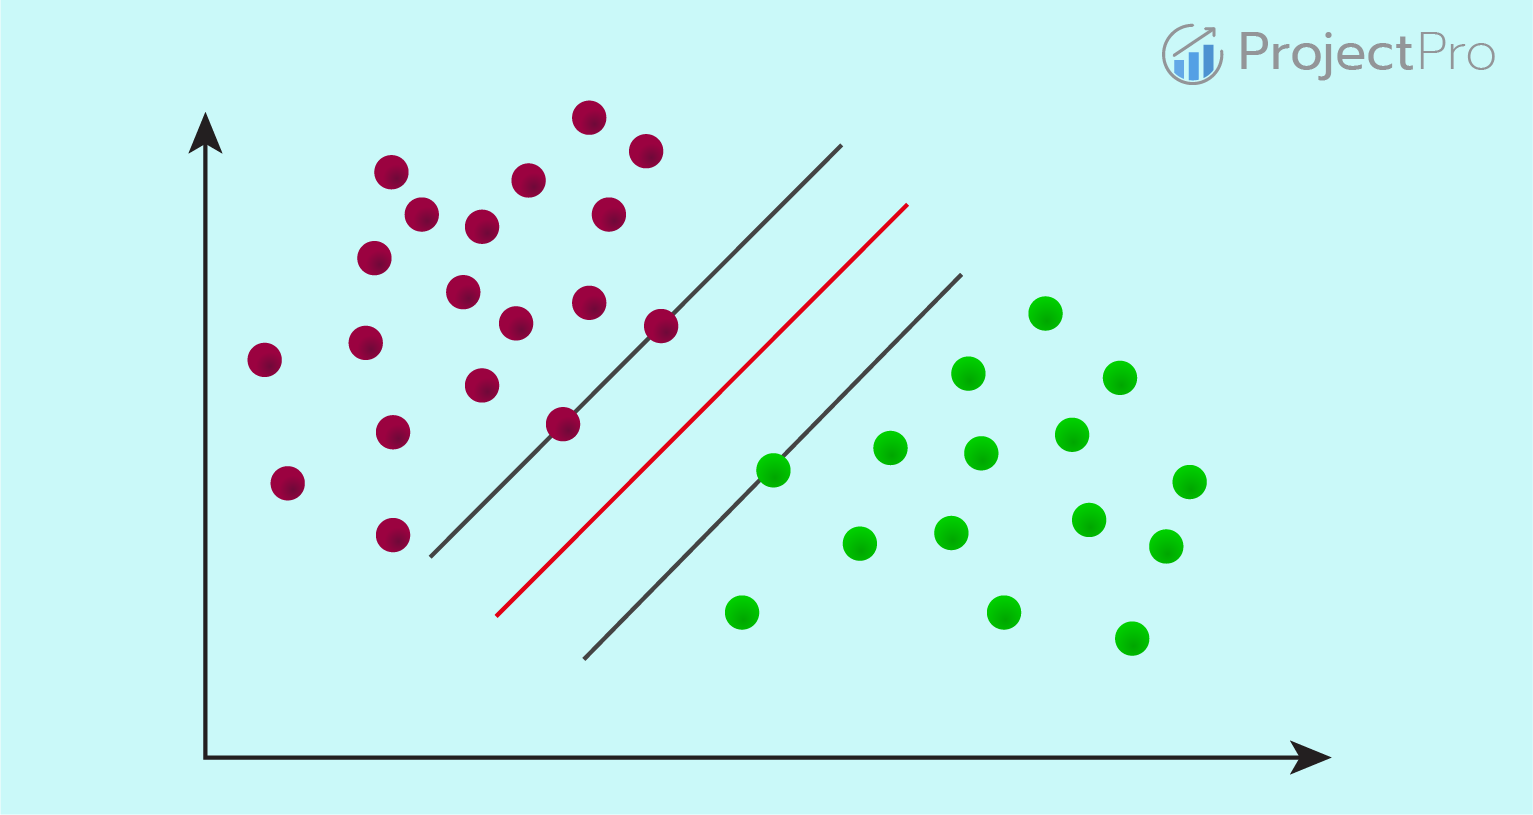 Support Vector Regression Analysis